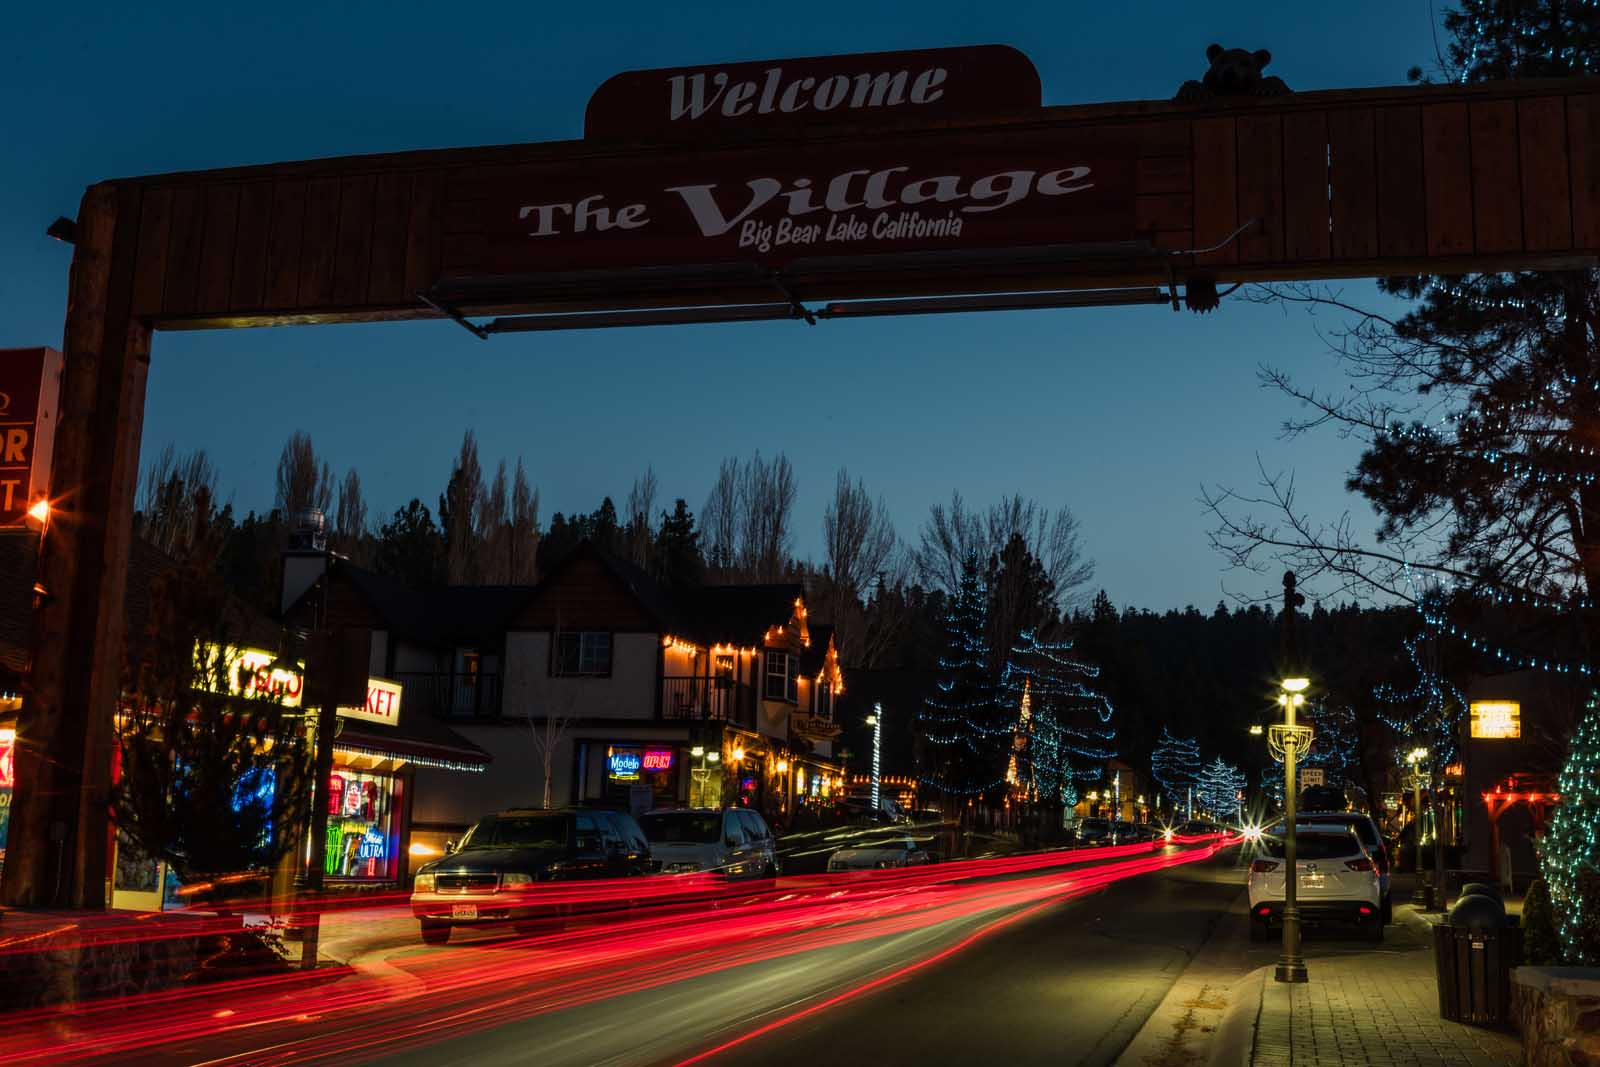 The Village in Big Bear at night